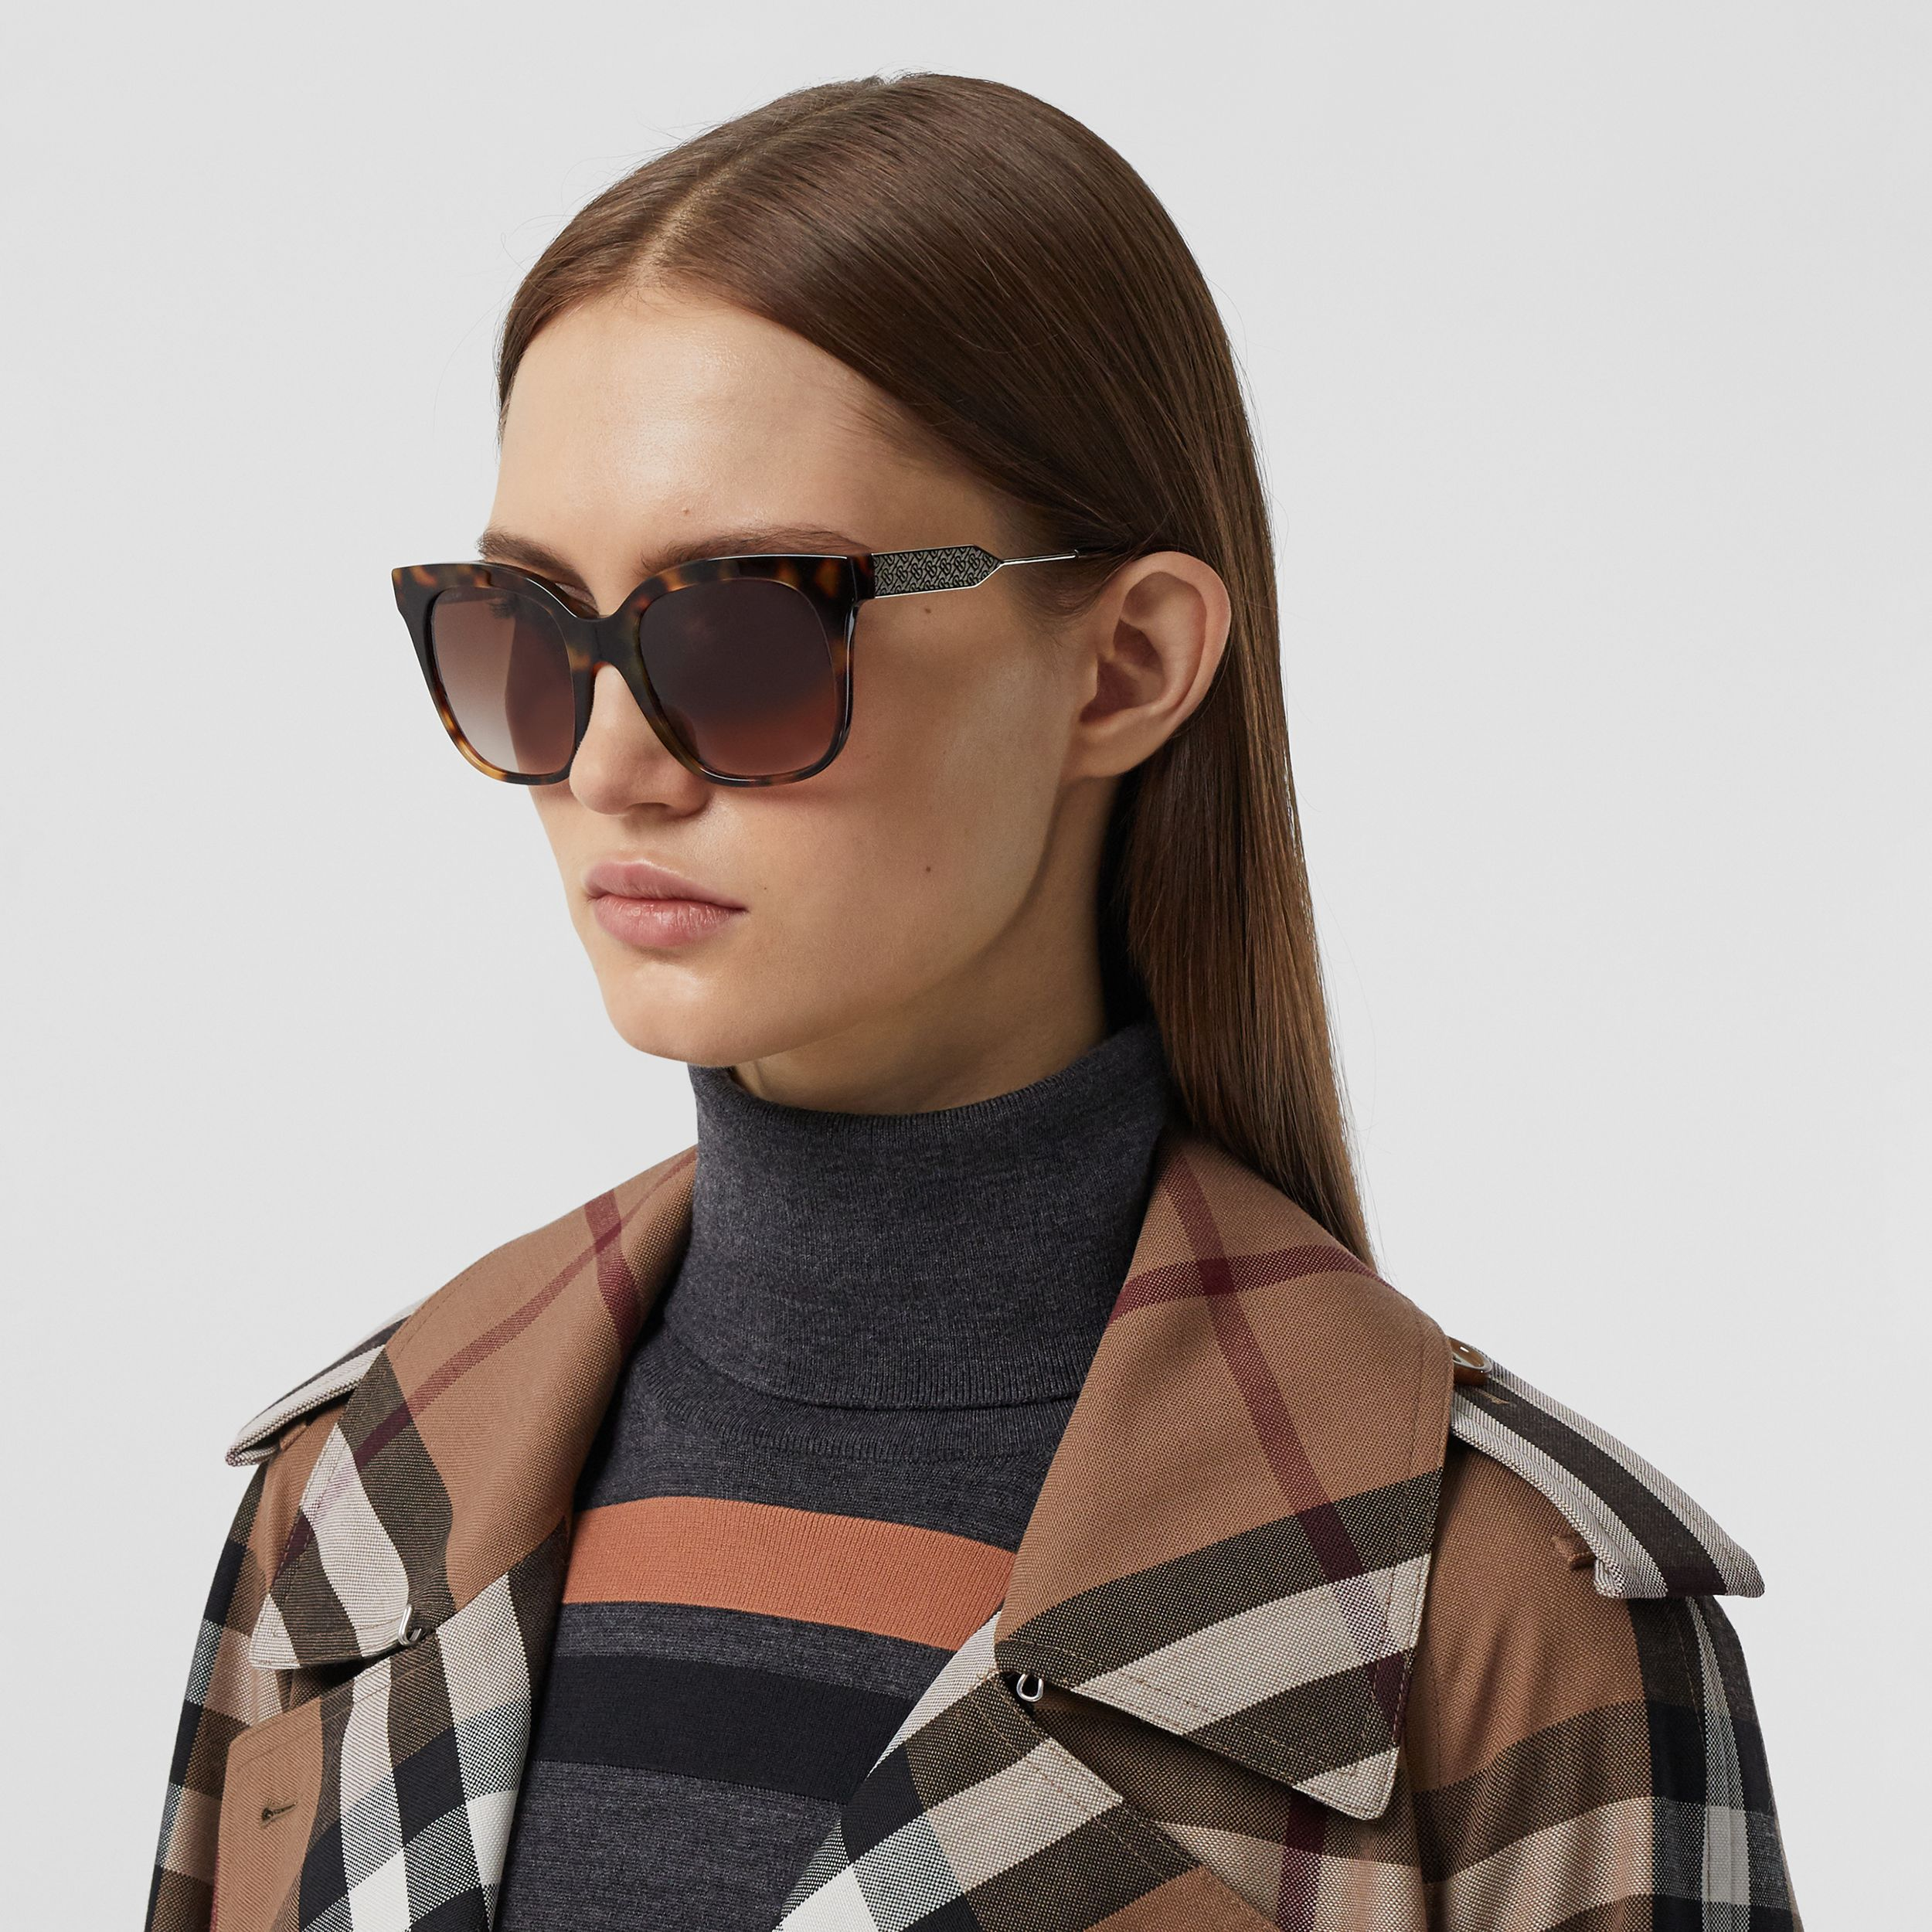 Butterfly Frame Sunglasses in Dark Amber Tortoiseshell - Women | Burberry - 3